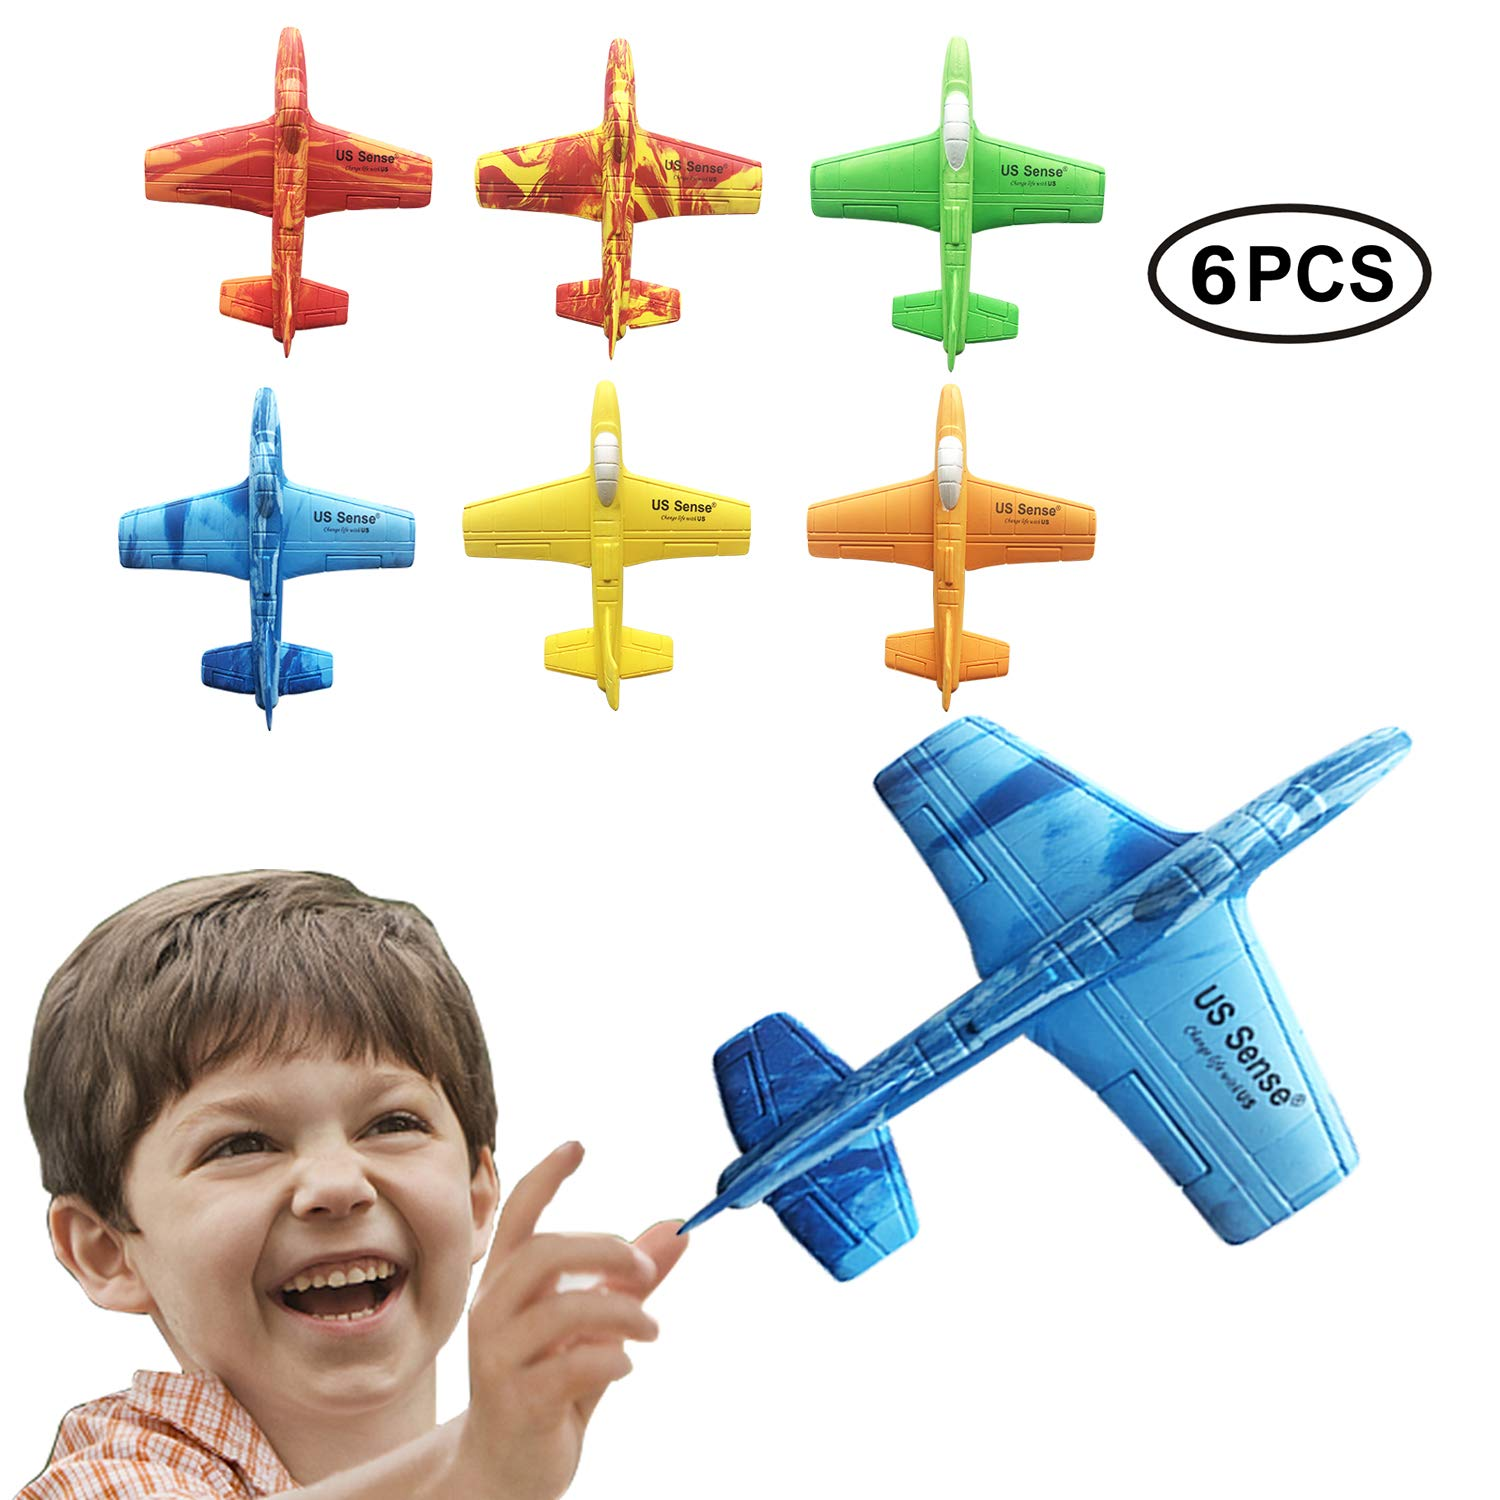 US Sense Airplane Battle Plane Toy for Kids, 6 Pack 7'' Throwing Foam Airplane Flying Aircraft Plane DIY Glider Aeroplane Model Jet Kit Flying Toys for Boys Girls Teens, Outdoor Sport Game Toys by US Sense